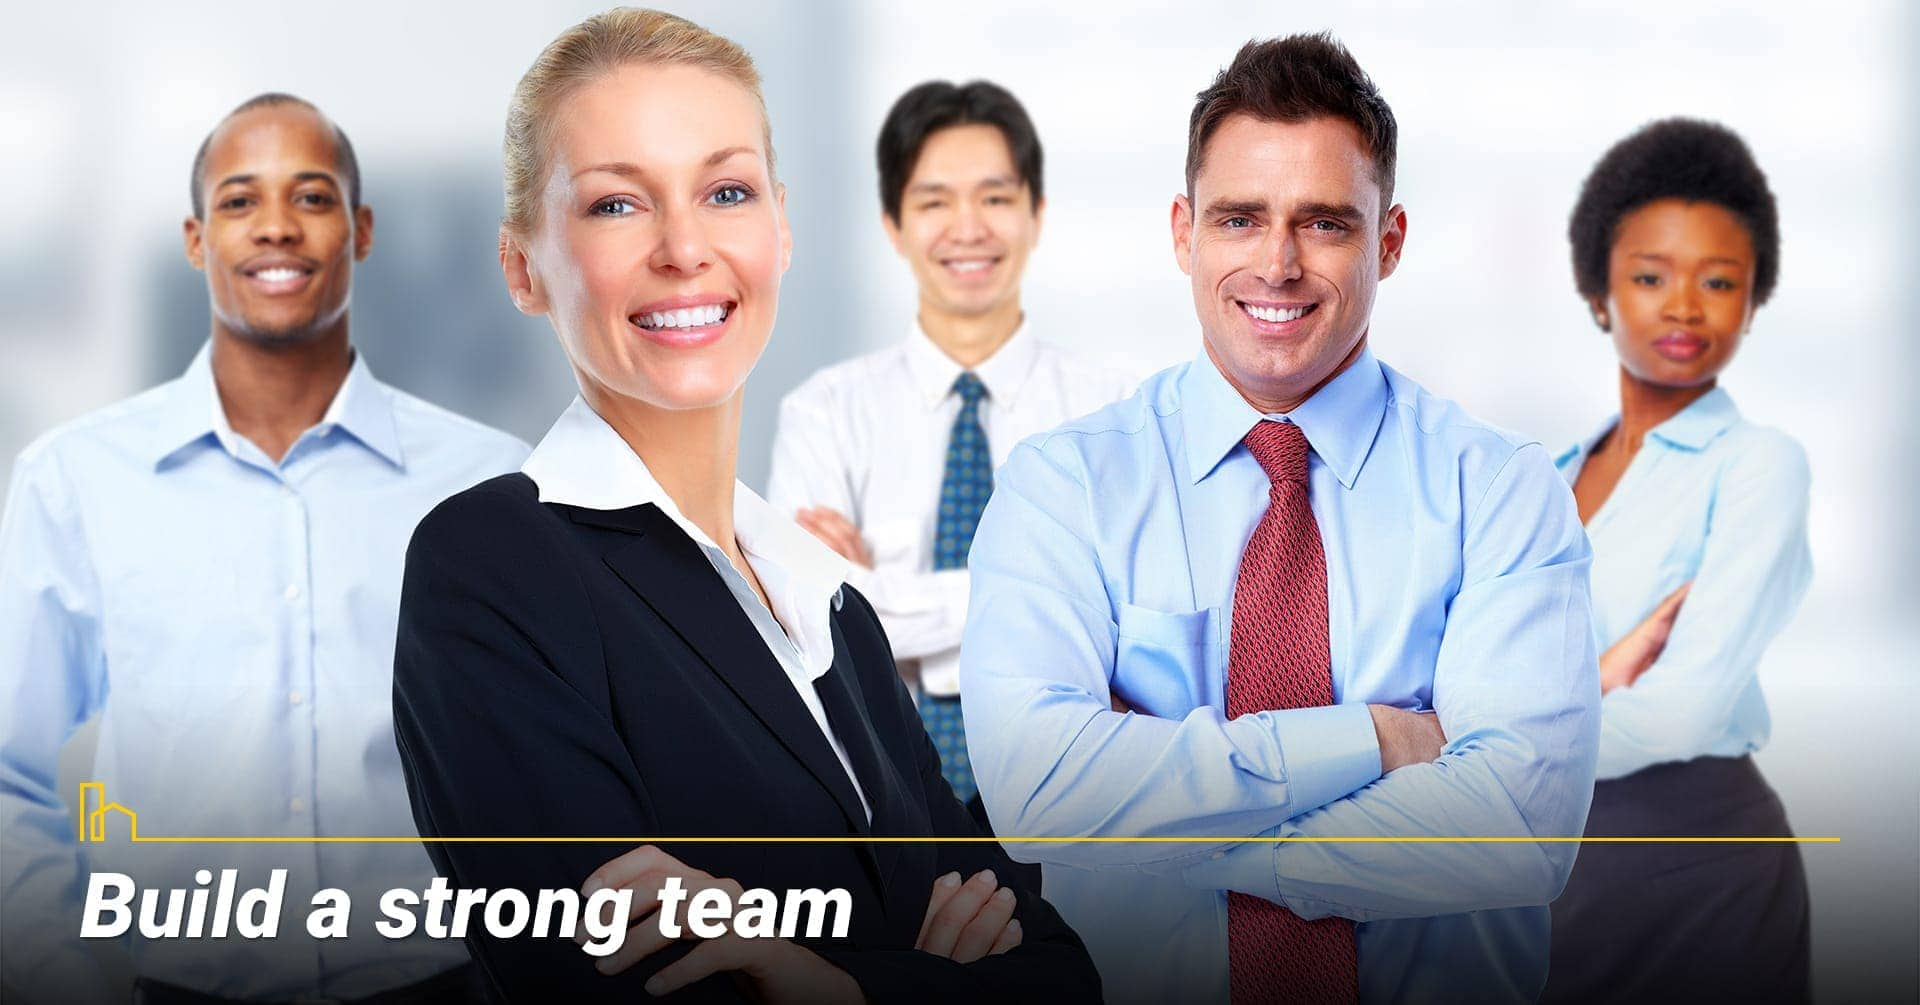 Build a strong team, work with smart people